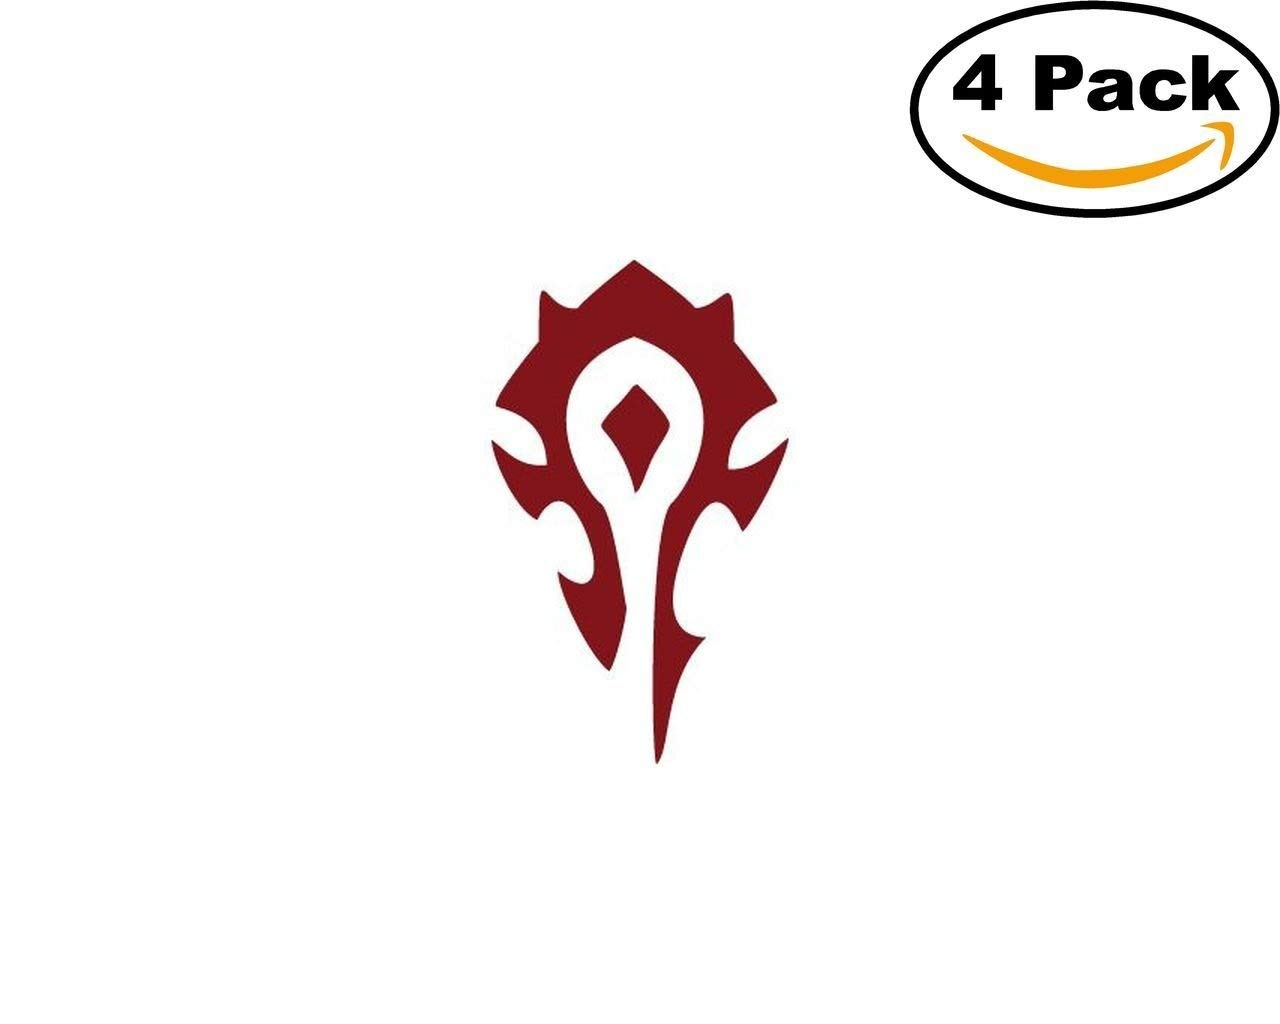 world of warcraft horde 4 Stickers 4x4 Inches Car Bumper Window Sticker Decal canvasbylam